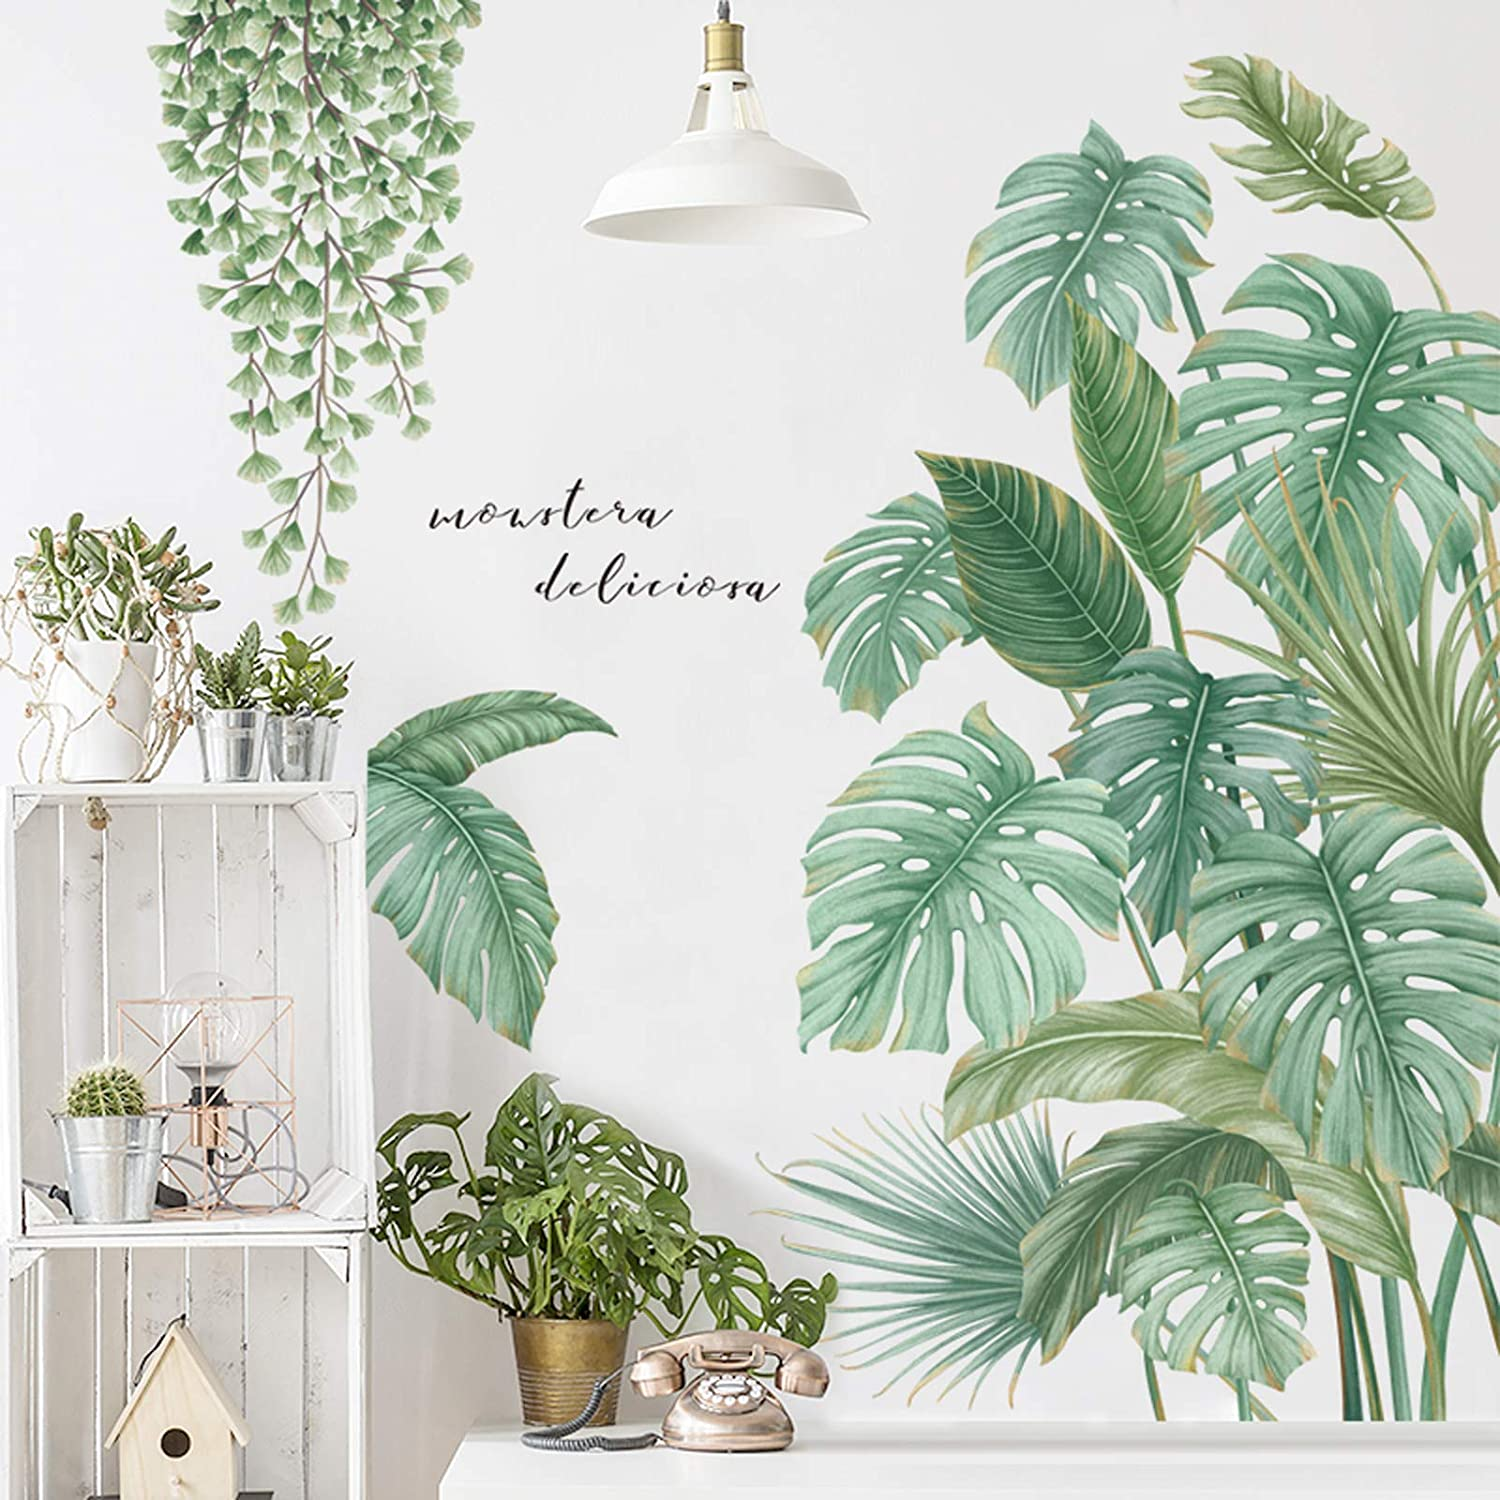 Monstera Leaf Tropical Plants Peel and Stick Wall Stickers Decor, Removable Waterproof 3D Fresh Leaves Wallpaper, Home Nursery Decor Art Murals Paper Decoration for Living Room Office Bathroom